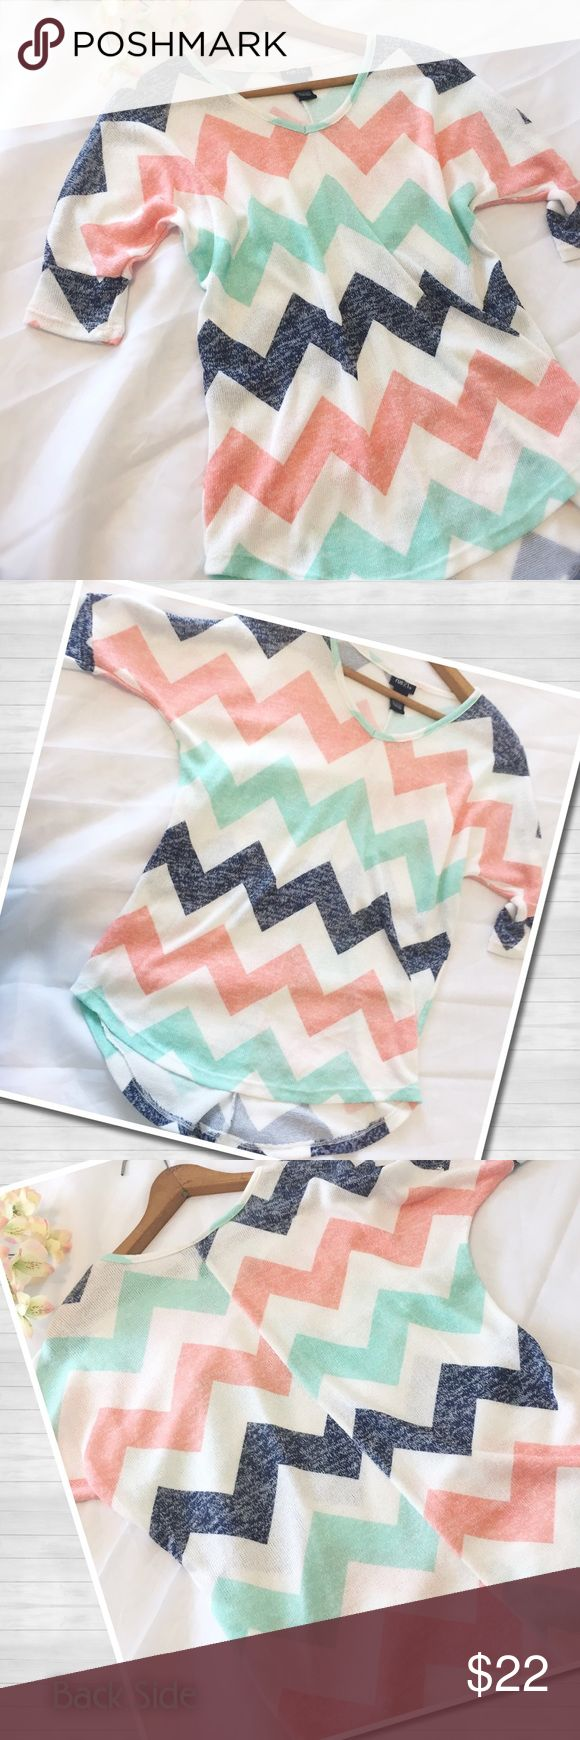 🆕Rue21 | Chevron Top | NWOT Rue21 | Beautiful Chevron top | Mint, Coral, Navy, & White. 65% Polyester | 33% Rayon | 2% Spandex. Size Medium. NWOT. Never worn. Perfect for office attire or casual wear! Dress up or down•very versatile!! Reasonable offers considered; please be respectful. 🚫trades/offline transactions. 🛍Bundles encouraged & discounted•10% off 3+ items. Thank you!!☺️ Rue21 Tops